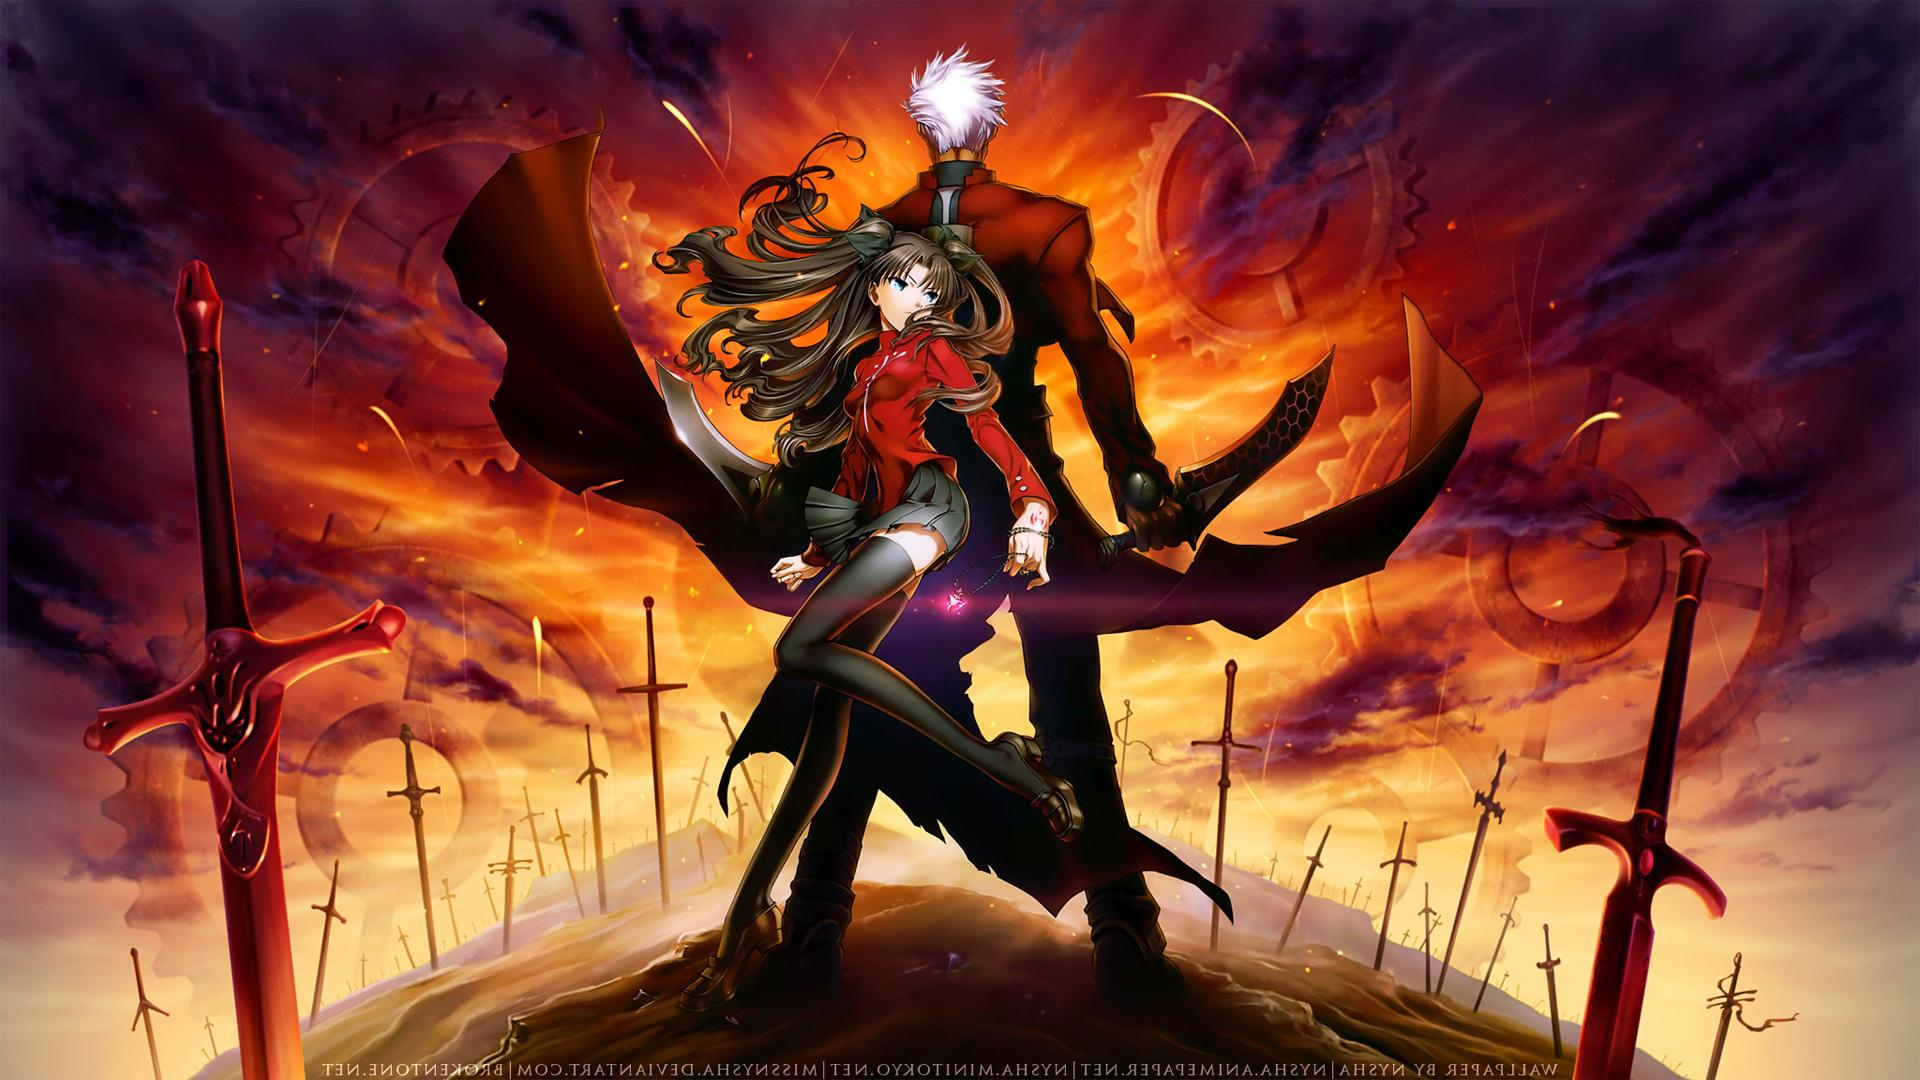 Free Download Fatestay Night Unlimited Blade Works Full Hd